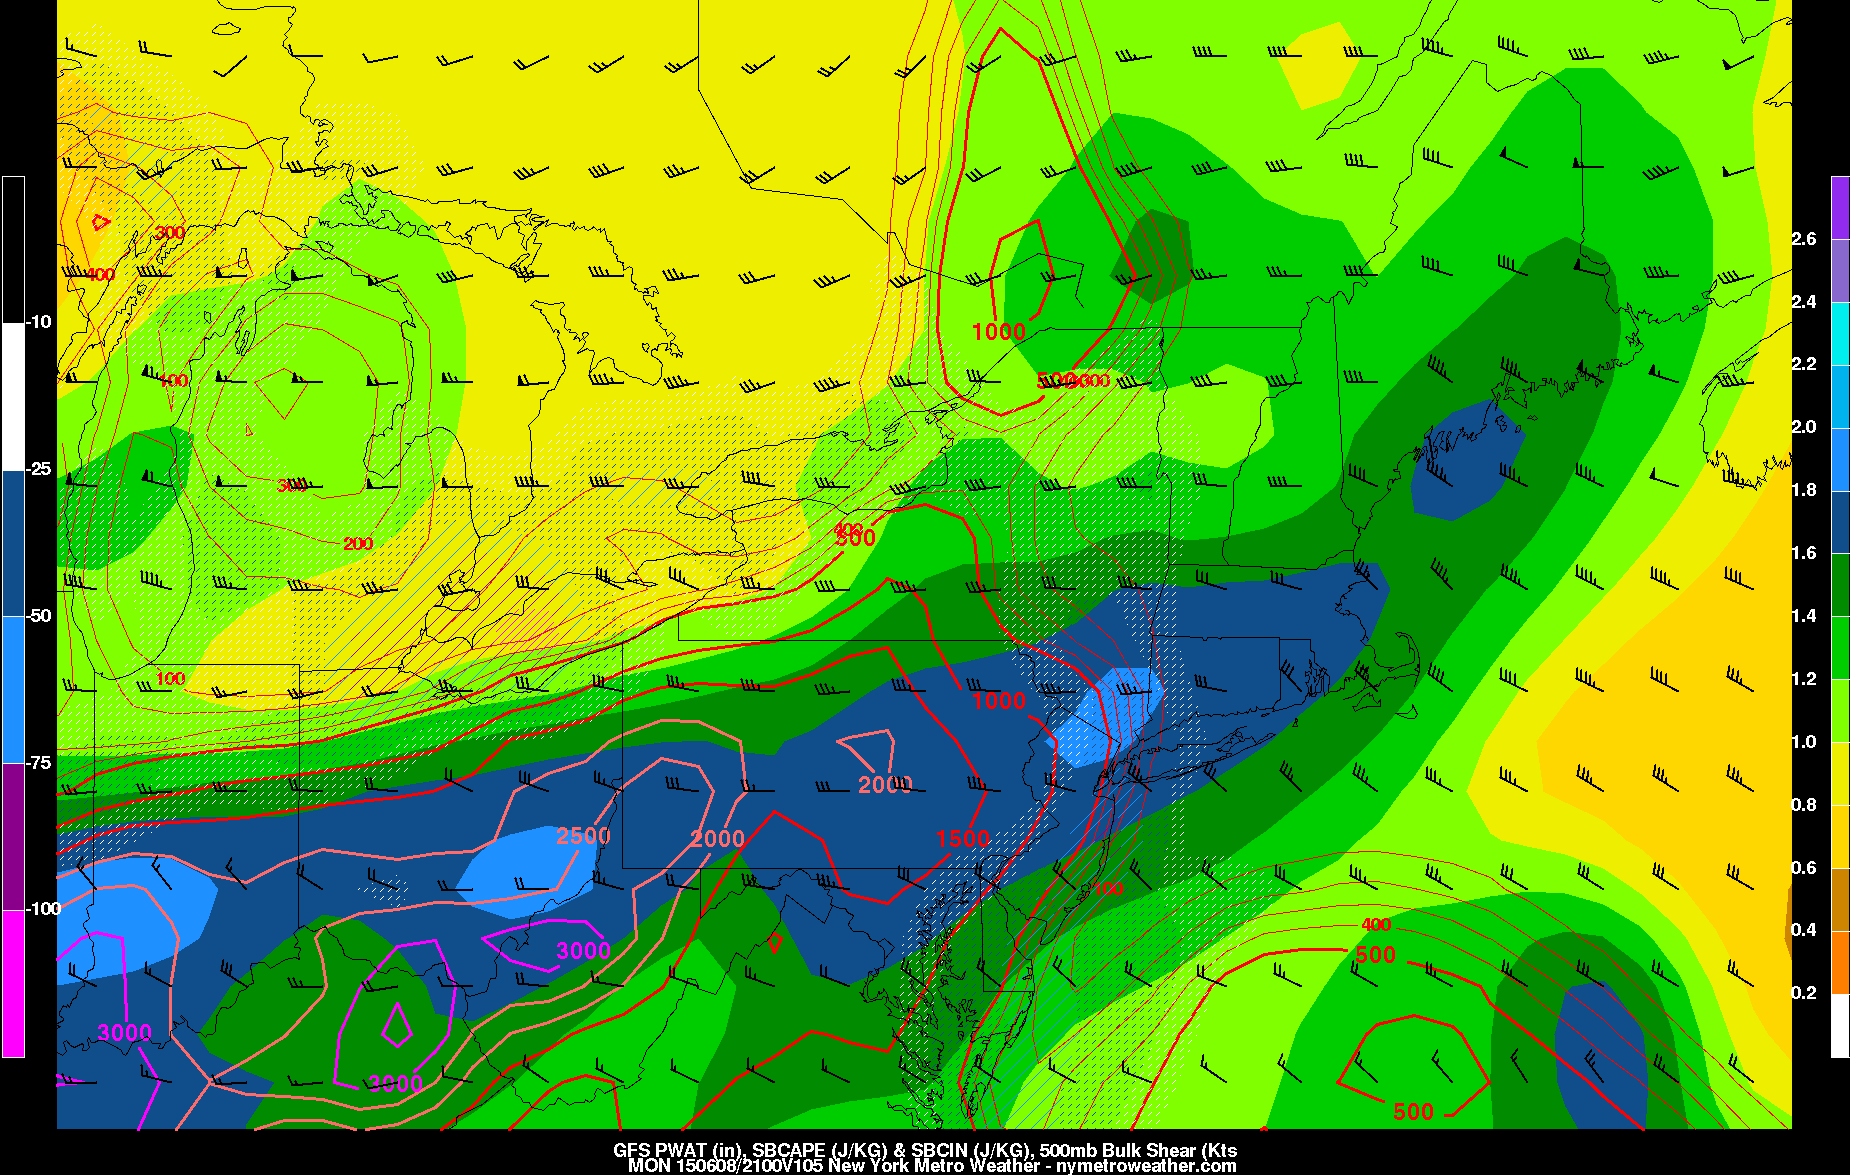 Today's GFS model valid for Monday afternoon shows plenty of moisture, a decent amount of wind shear, and modest instability. This could lead to some strong and isolated severe thunderstorms.